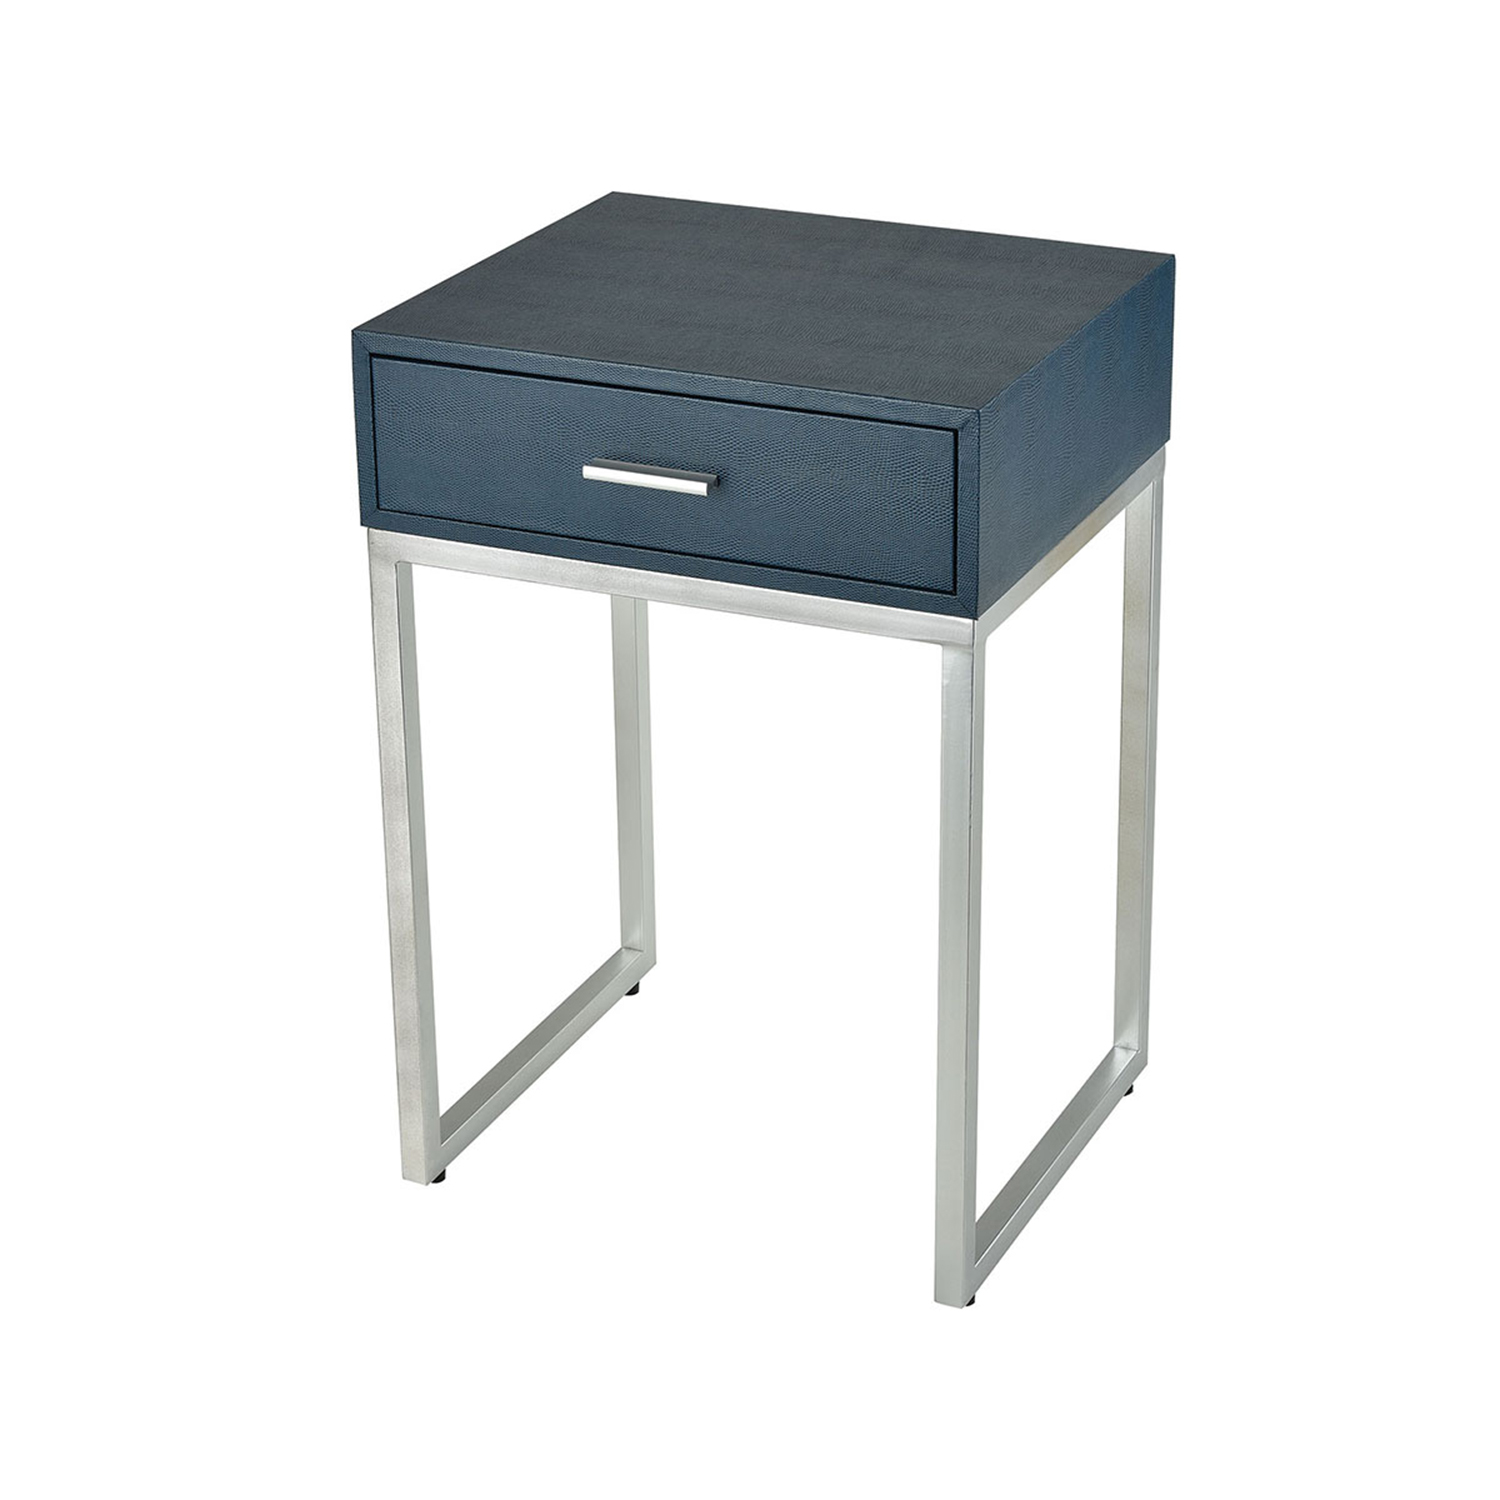 sterling industries les revoires navy faux shagreen with silver accent table hover zoom small round pedestal end rectangle trestle dining garden storage bench room centerpieces